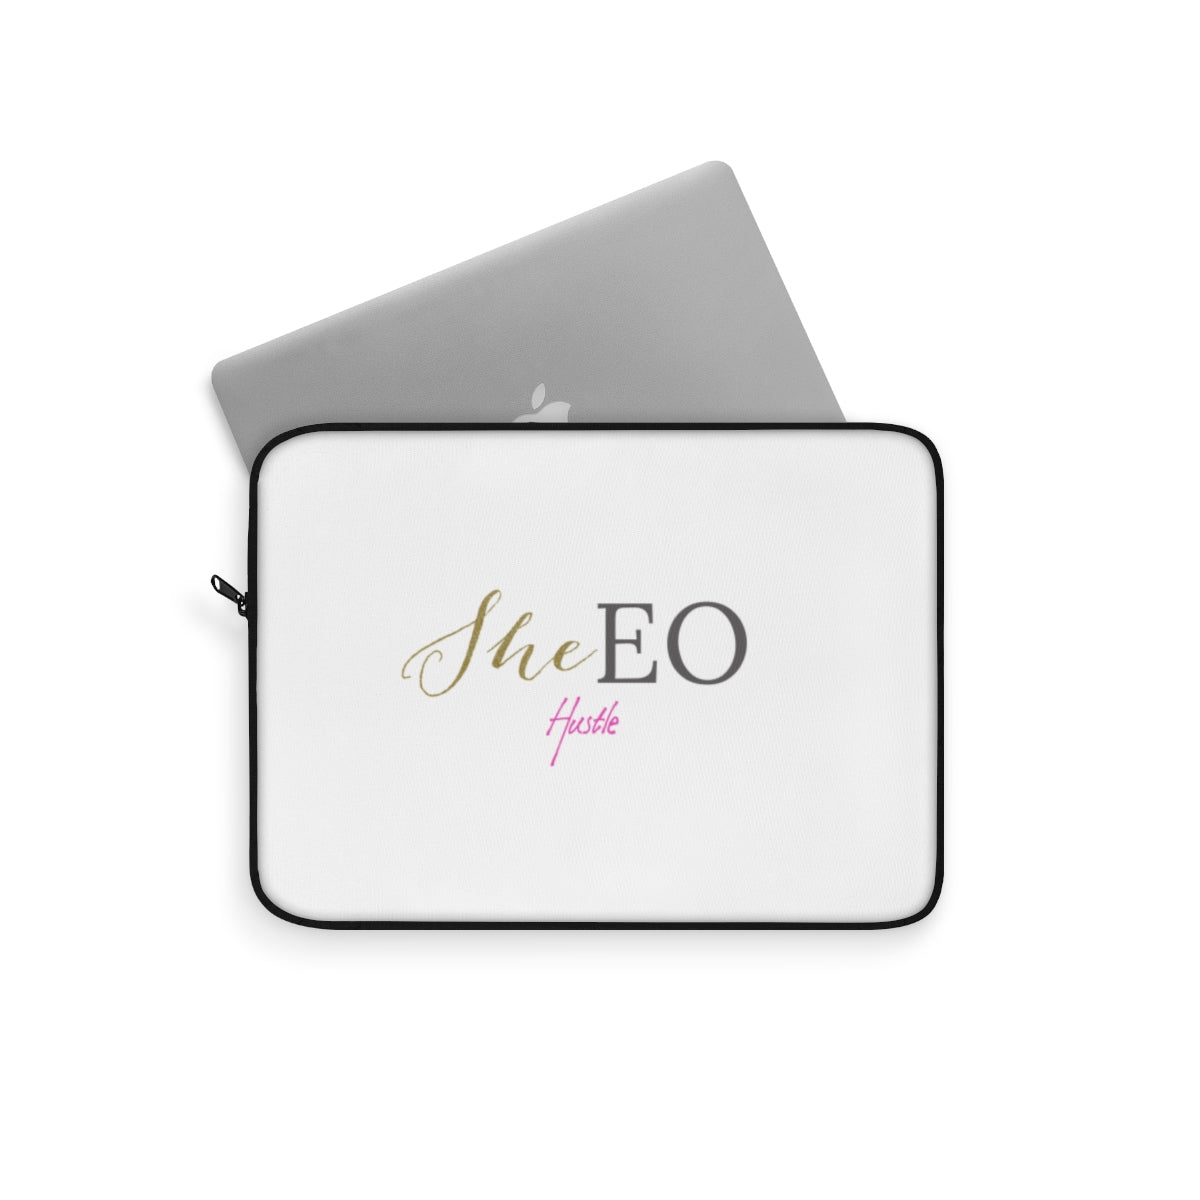 SheEo Hustle Laptop Sleeve